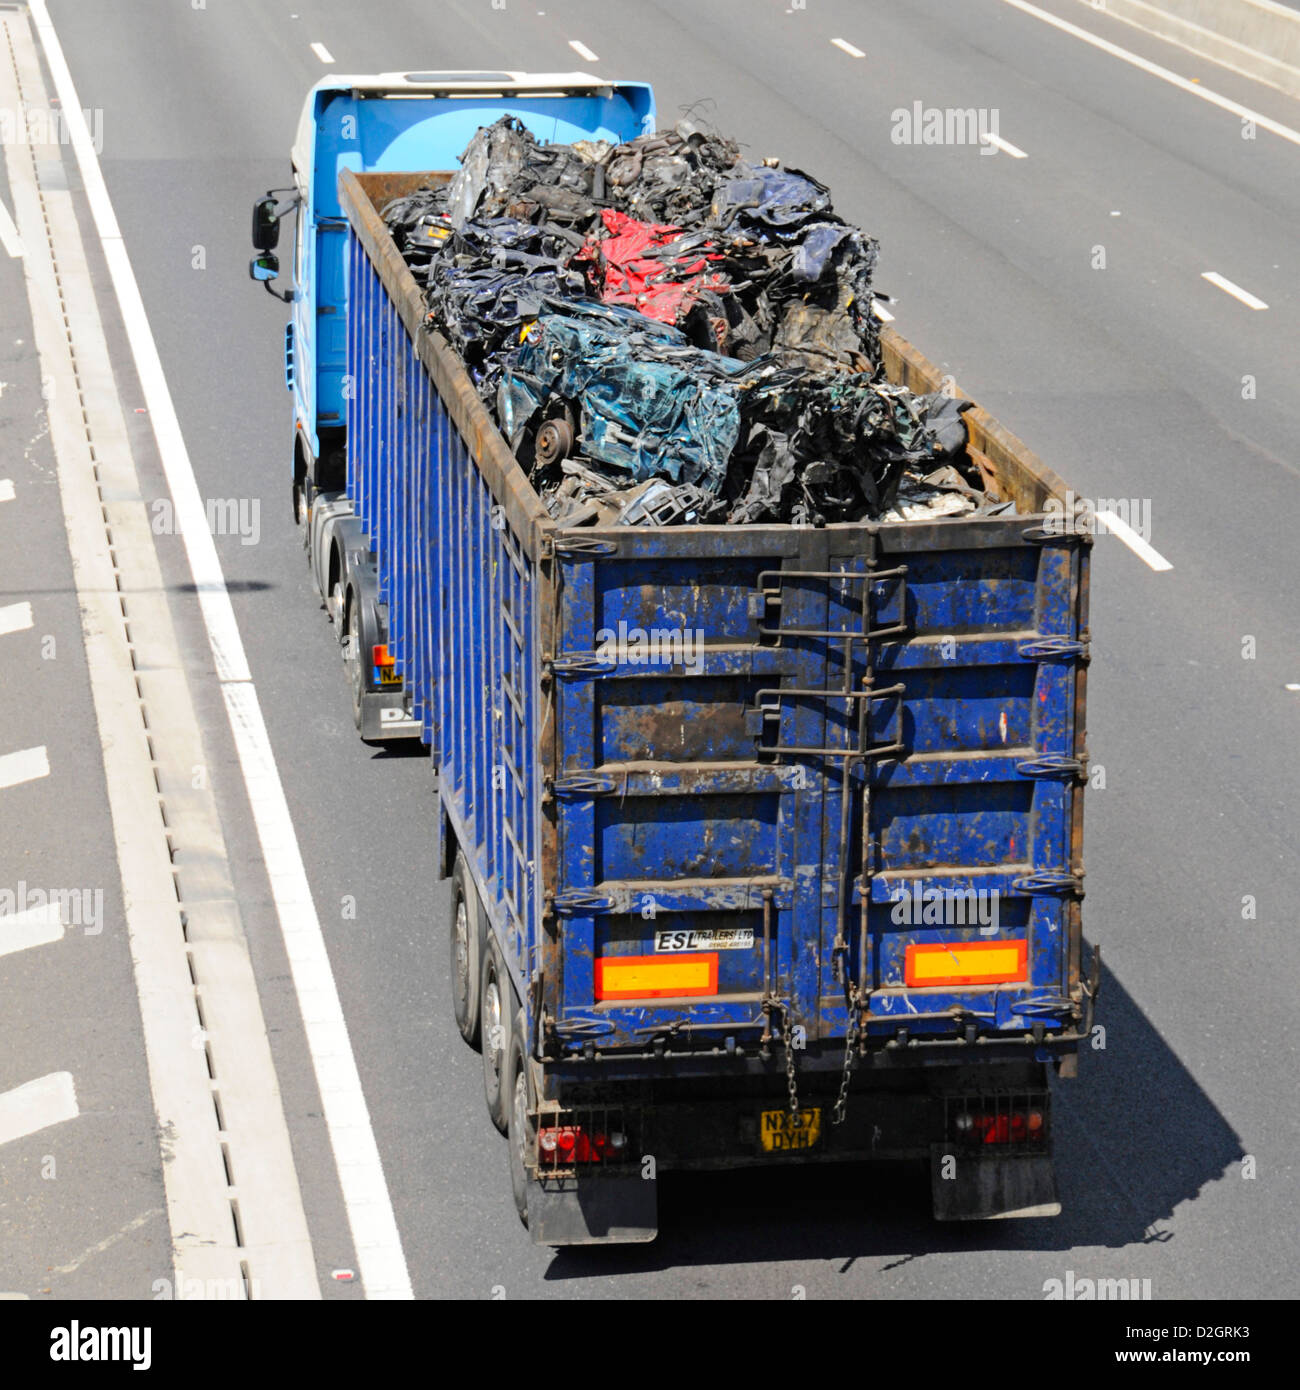 Truck load of scrap metal for recycling Stock Photo: 53230215 - Alamy